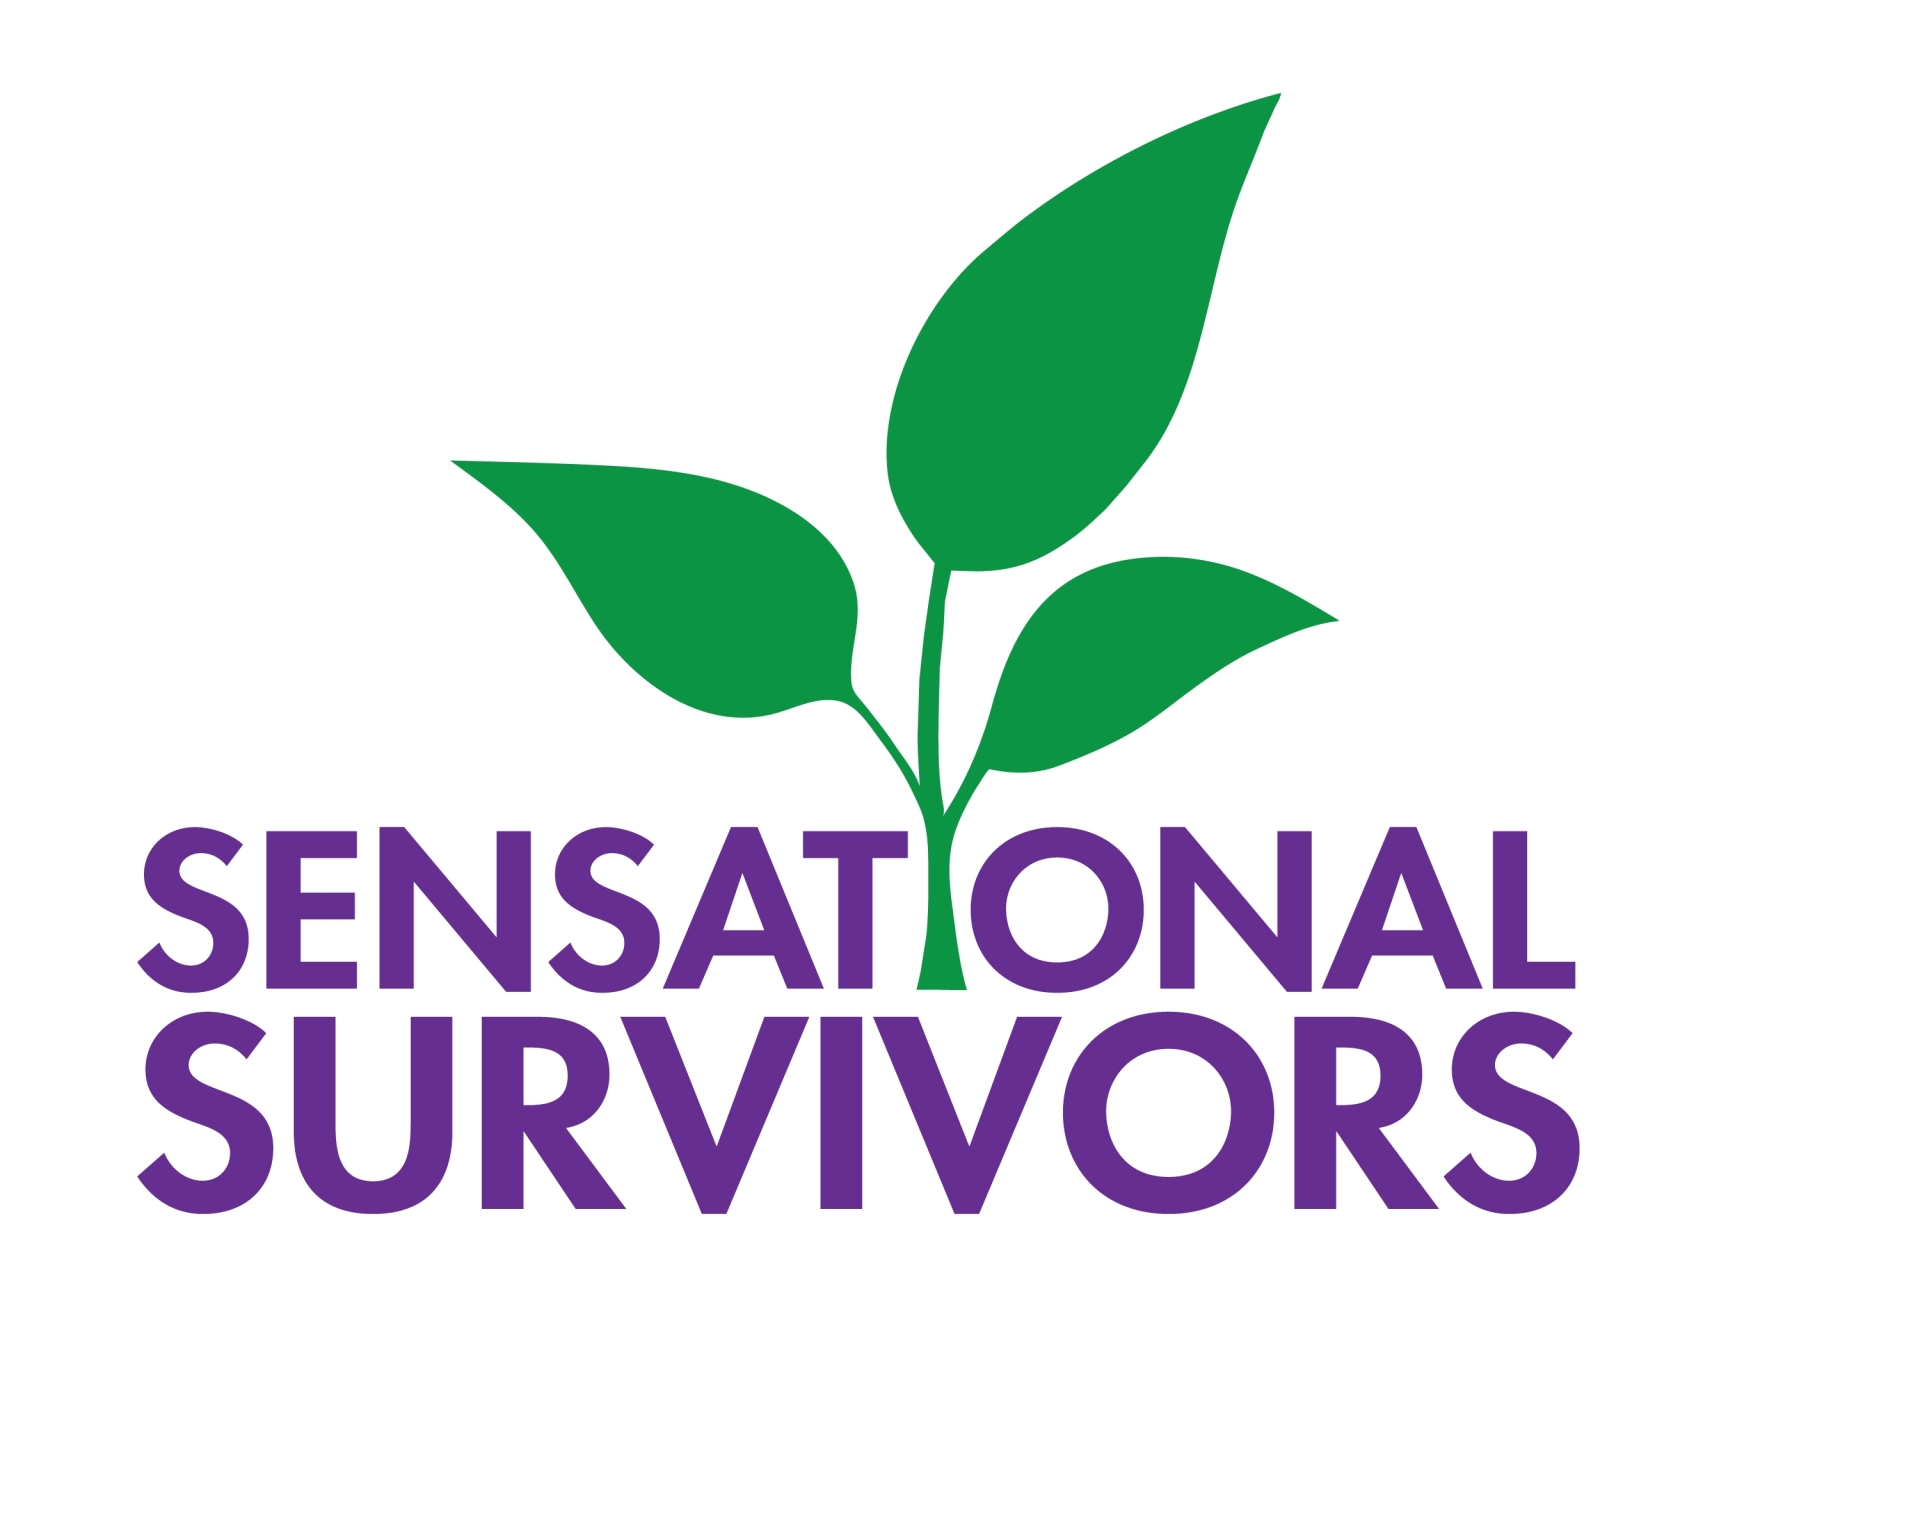 Sensational Survivors